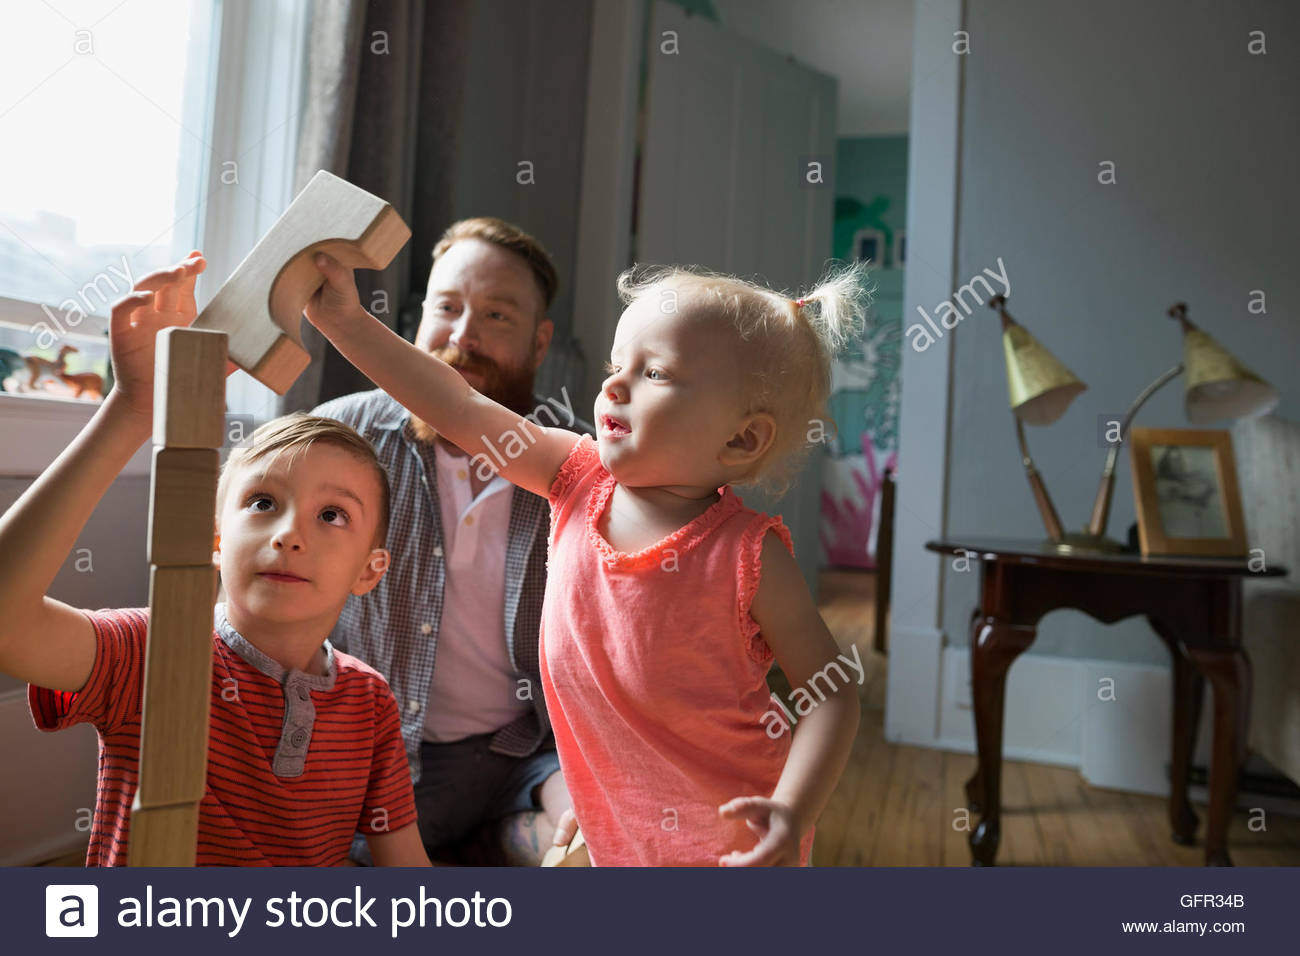 Father and children playing stacking wood blocks - Stock Image